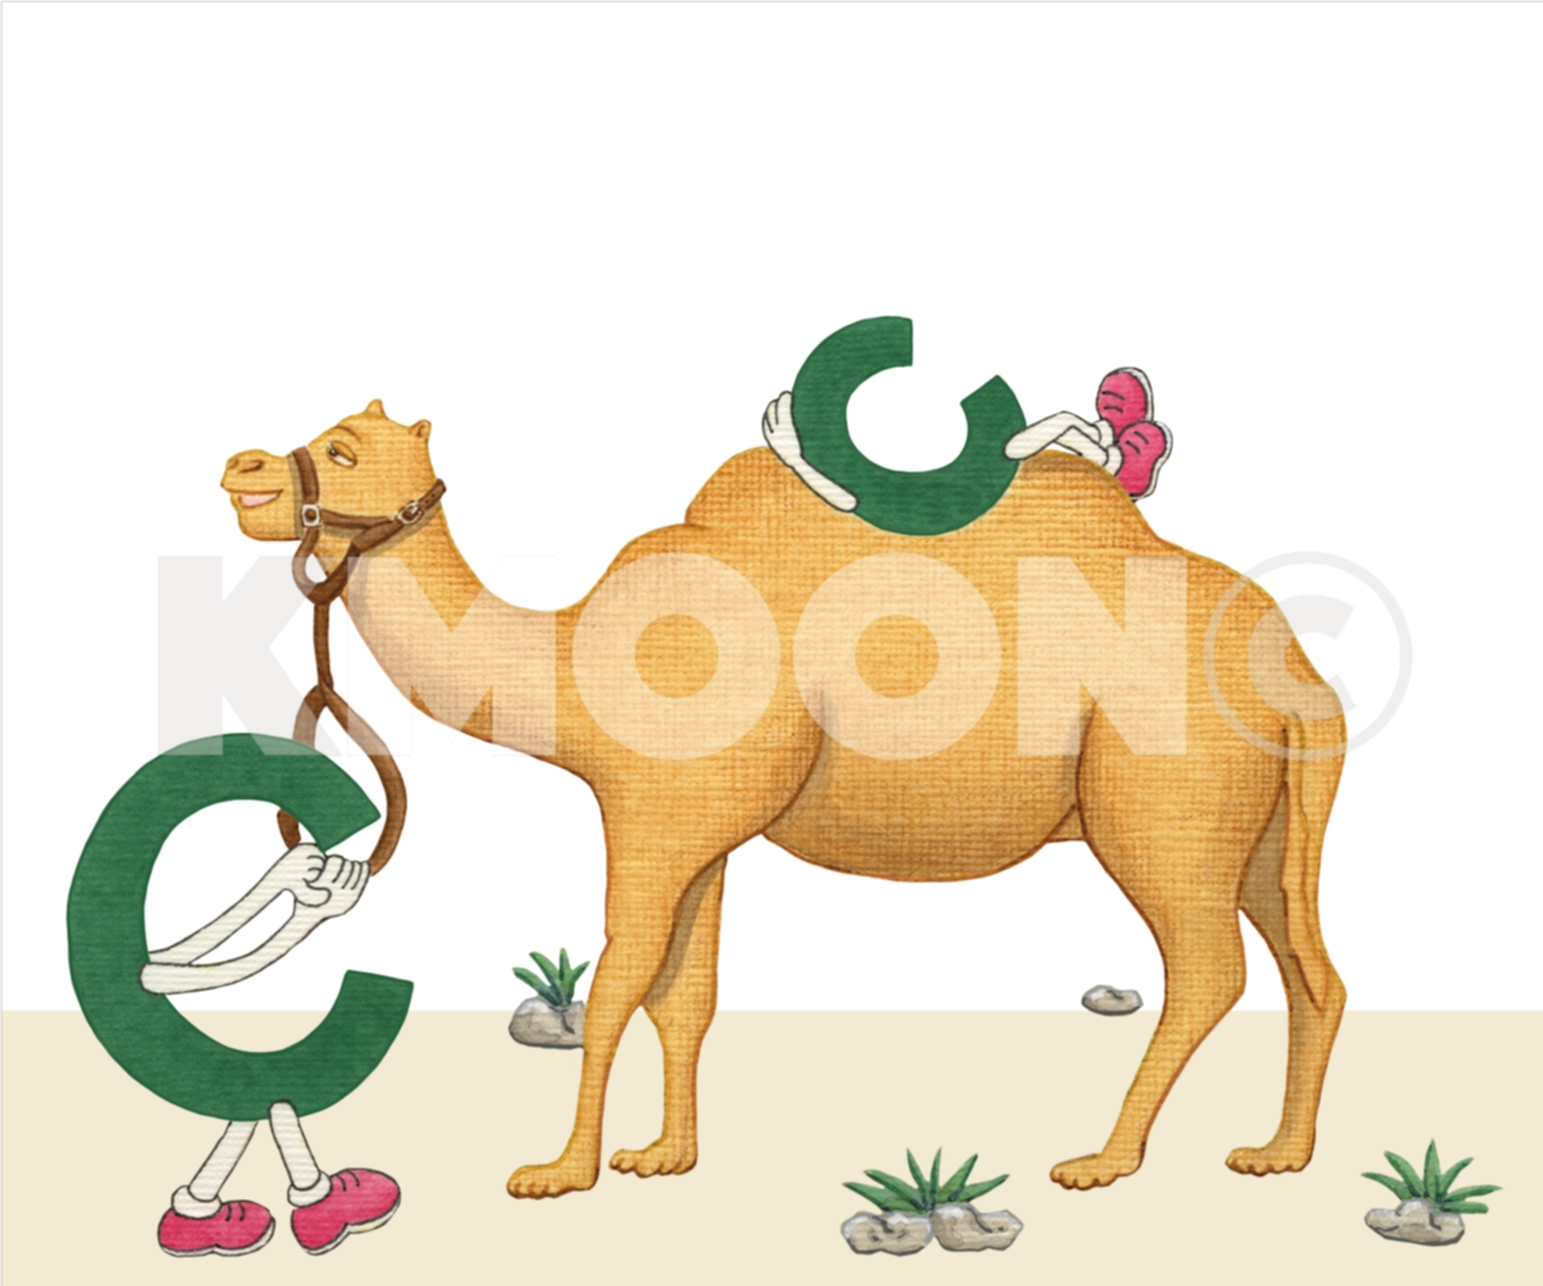 Cc is for ... camel